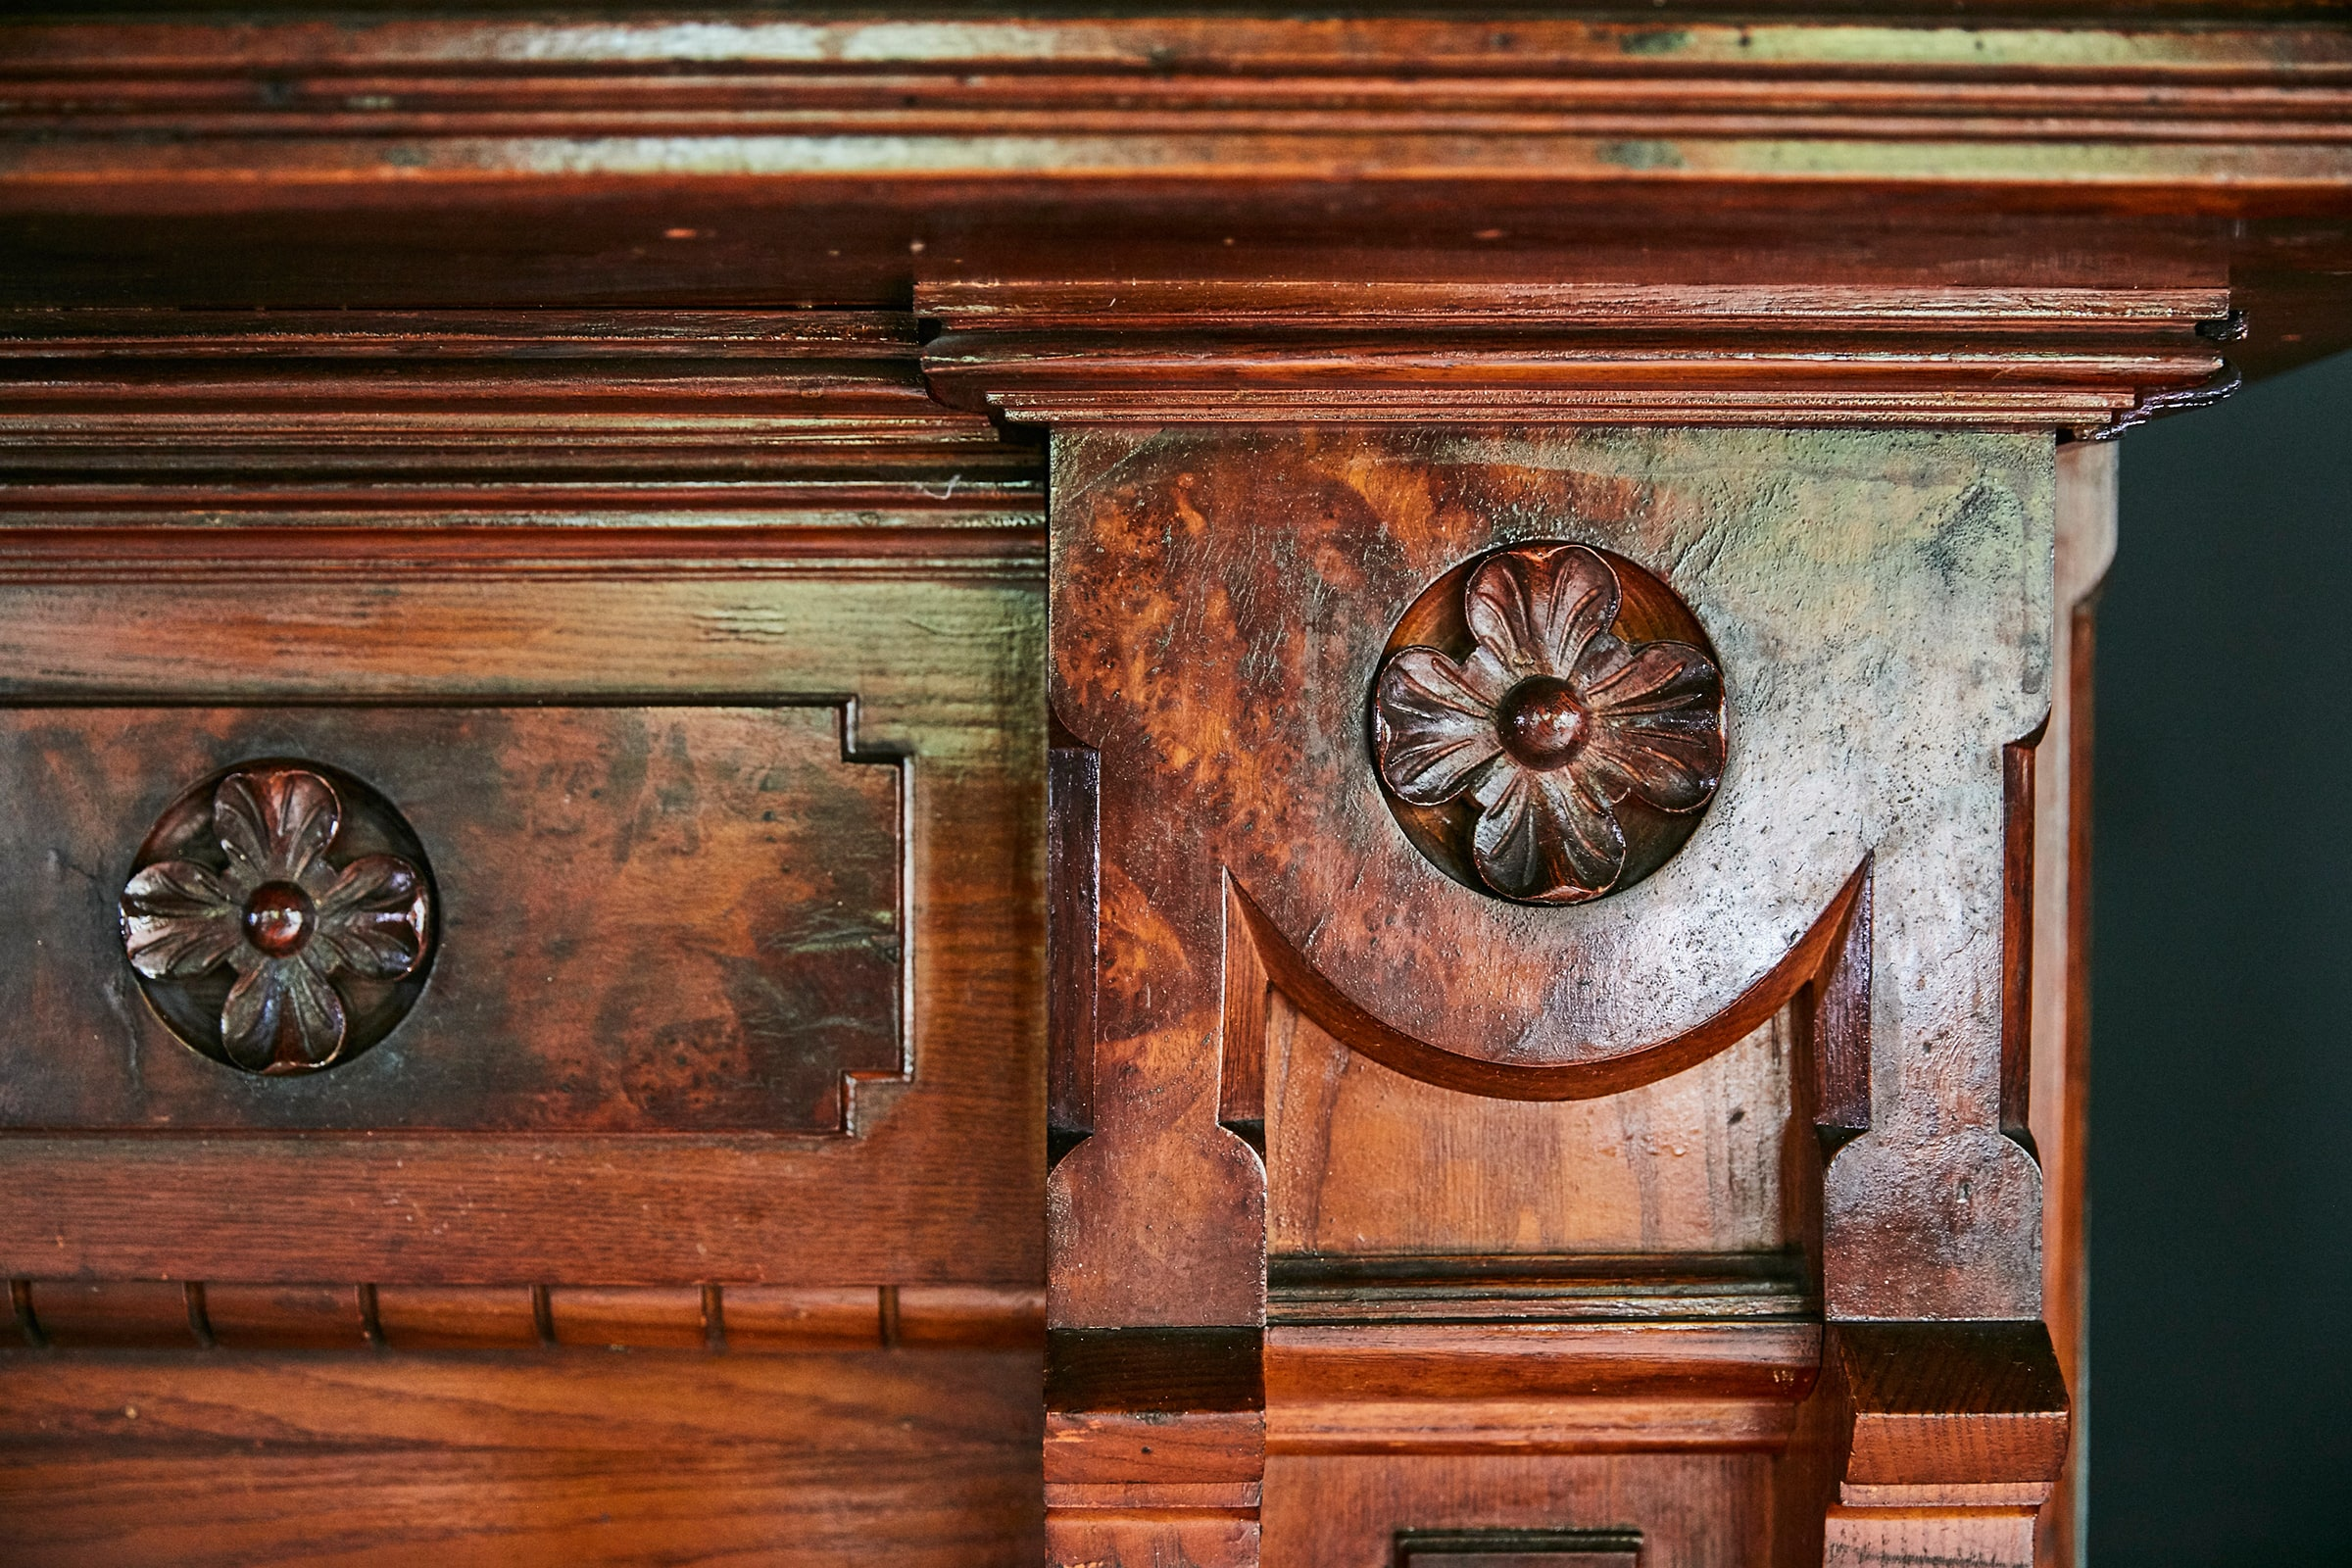 detail of wooden mantlepiece